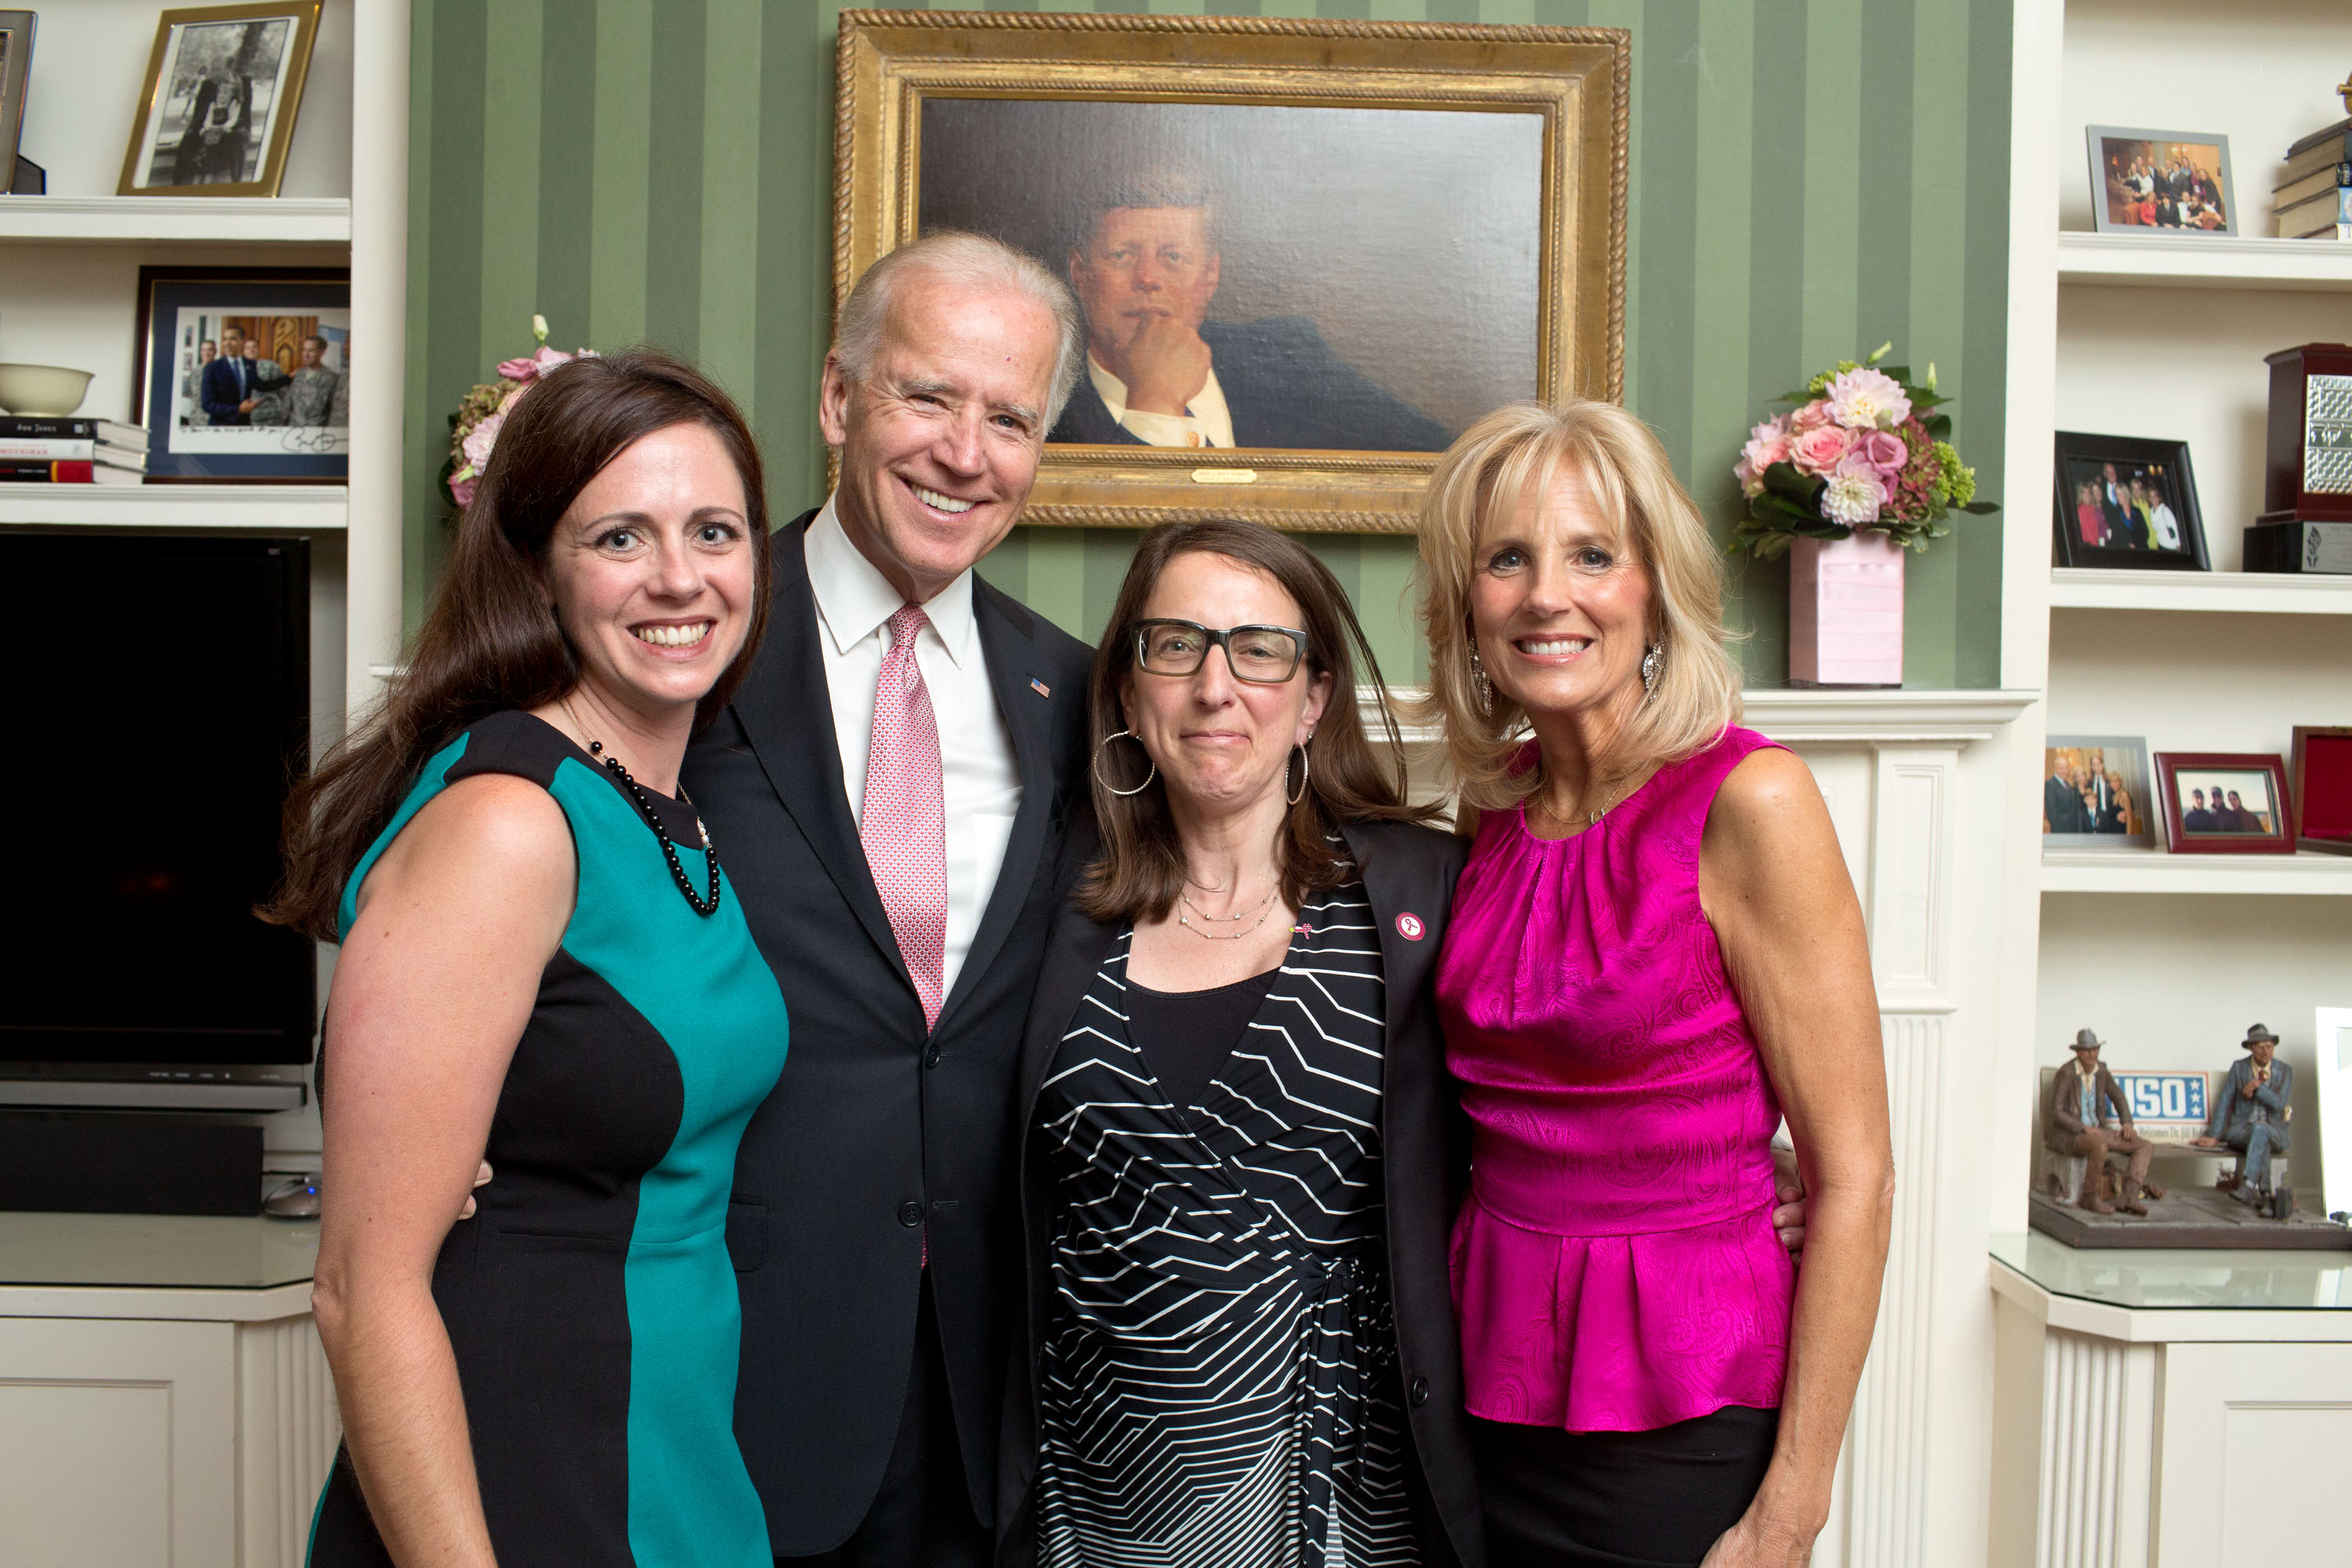 Vice President Joe Biden and Dr. Jill Biden do a photo line at a Breast Cancer Awareness month reception, in the library at the Naval Observatory Residence, in Washington, D.C., October 24, 2012. (Official White House Photo by David Lienemann)